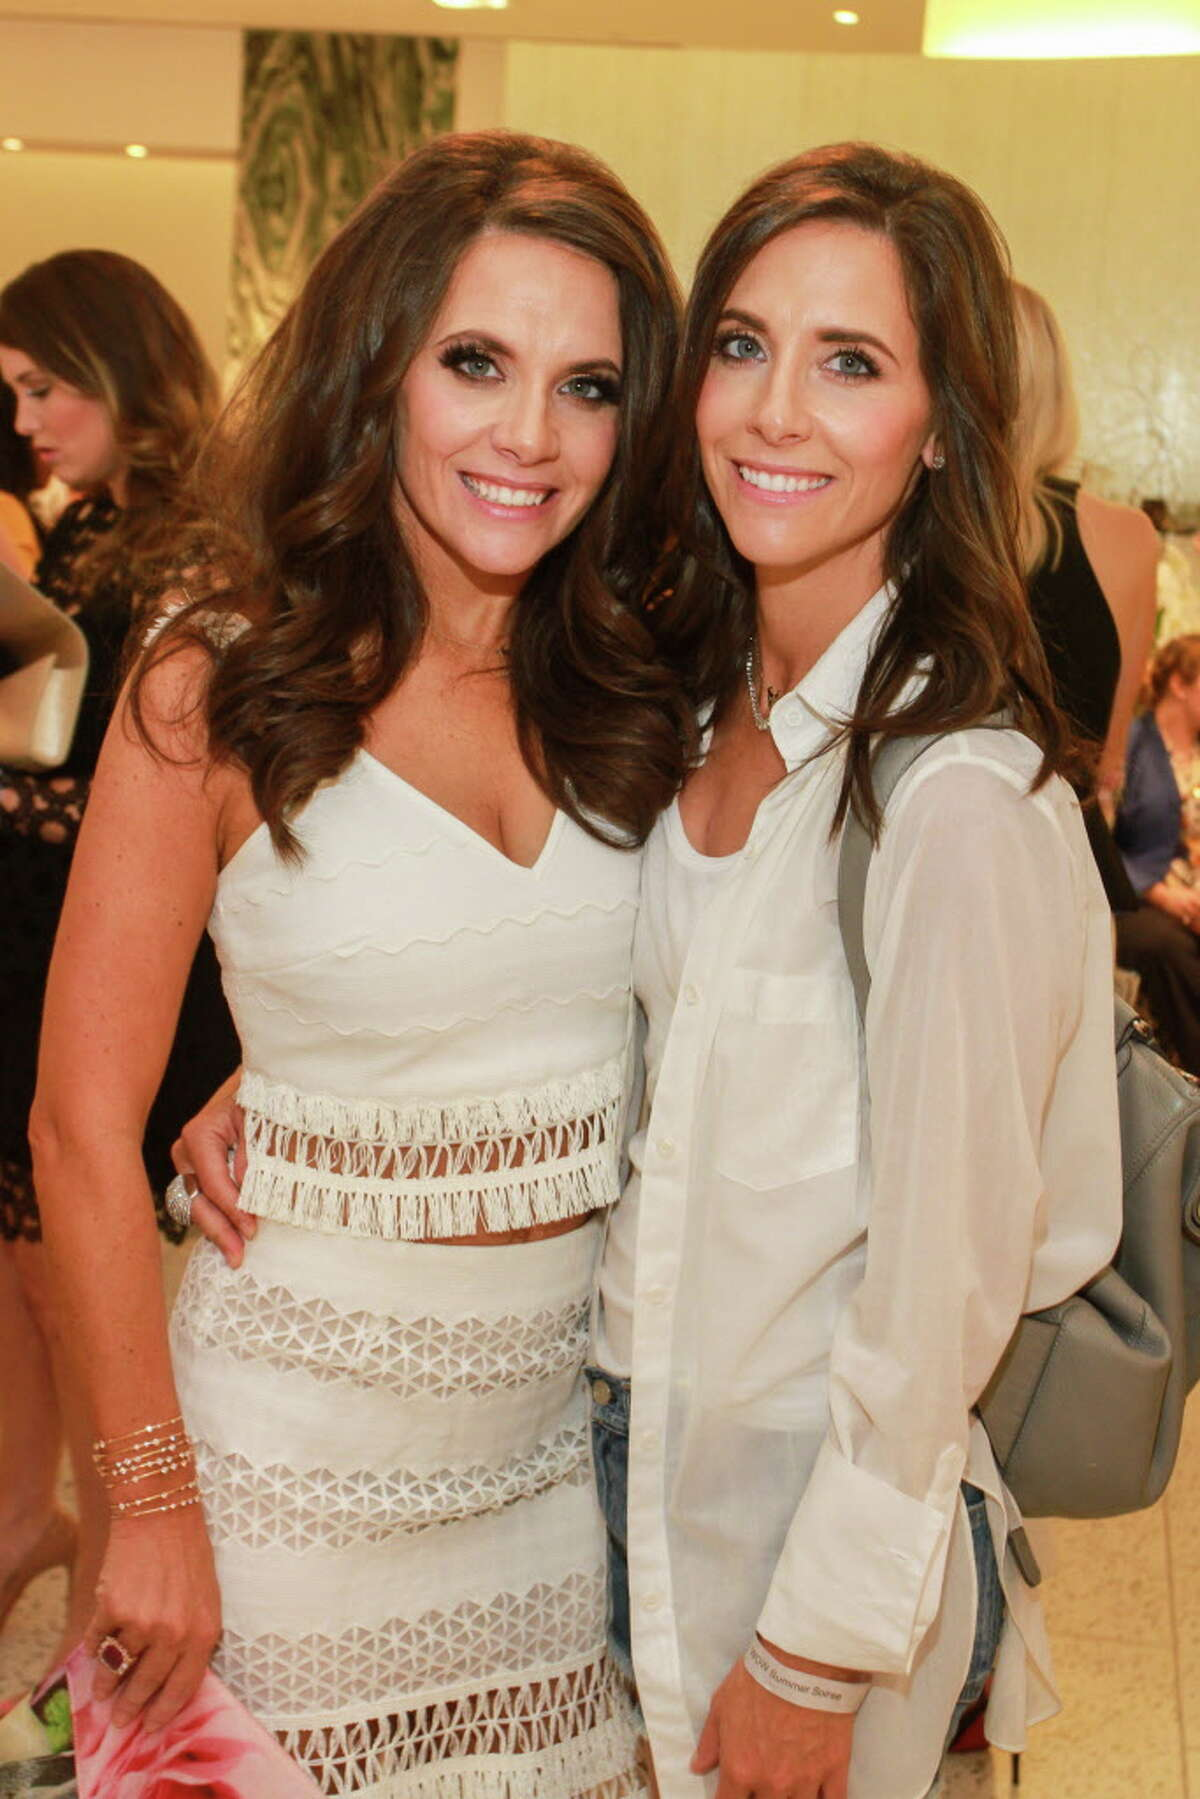 """Joanna Hartland Marks, left, and Hannah McNair at """"Sizzling Summer Soiree"""" hosted by Dress for Success Houston's Women of Wardrobe, at Tootsies. (For the Chronicle/Gary Fountain, August 23, 2017)"""